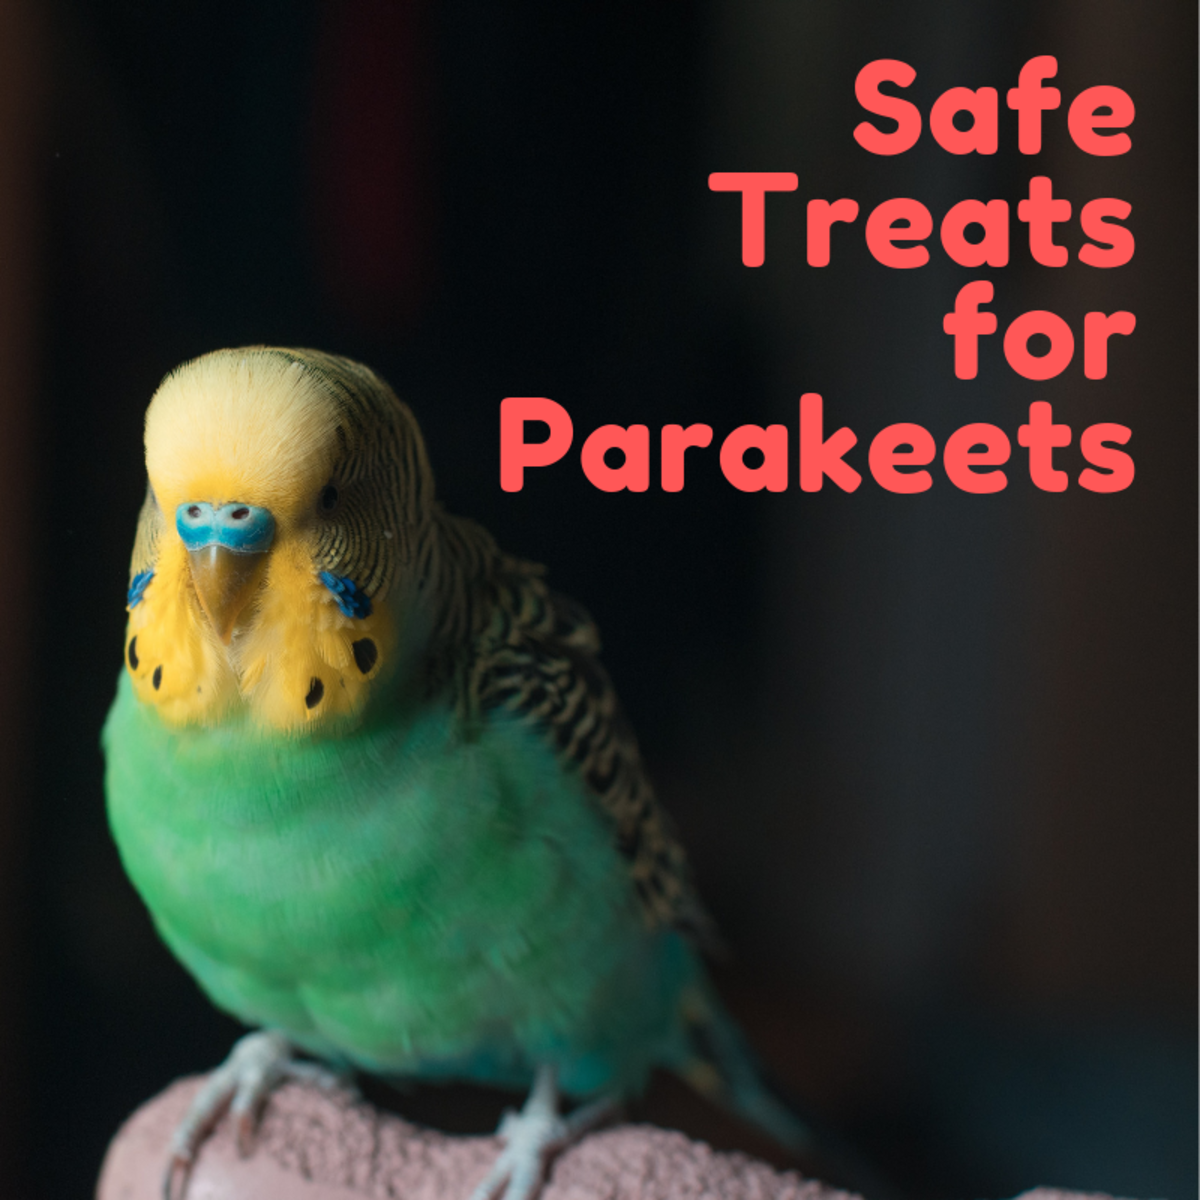 Add some variety to your budgie's diet with these healthy, safe-to-eat options.